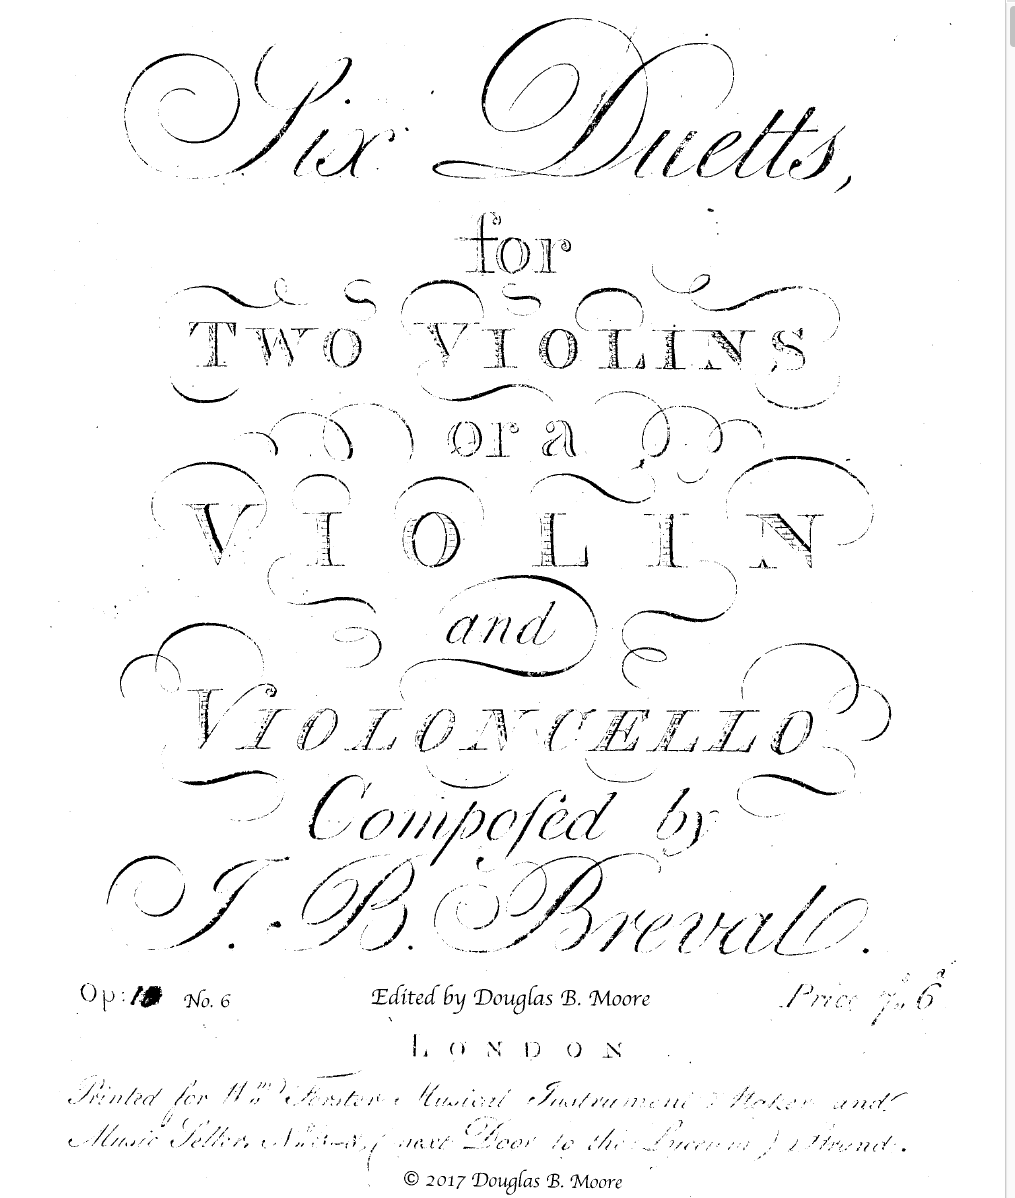 Bréval: Duett for 2 Violins or Violin and Cello, Op. 10, No. 6 in A Major